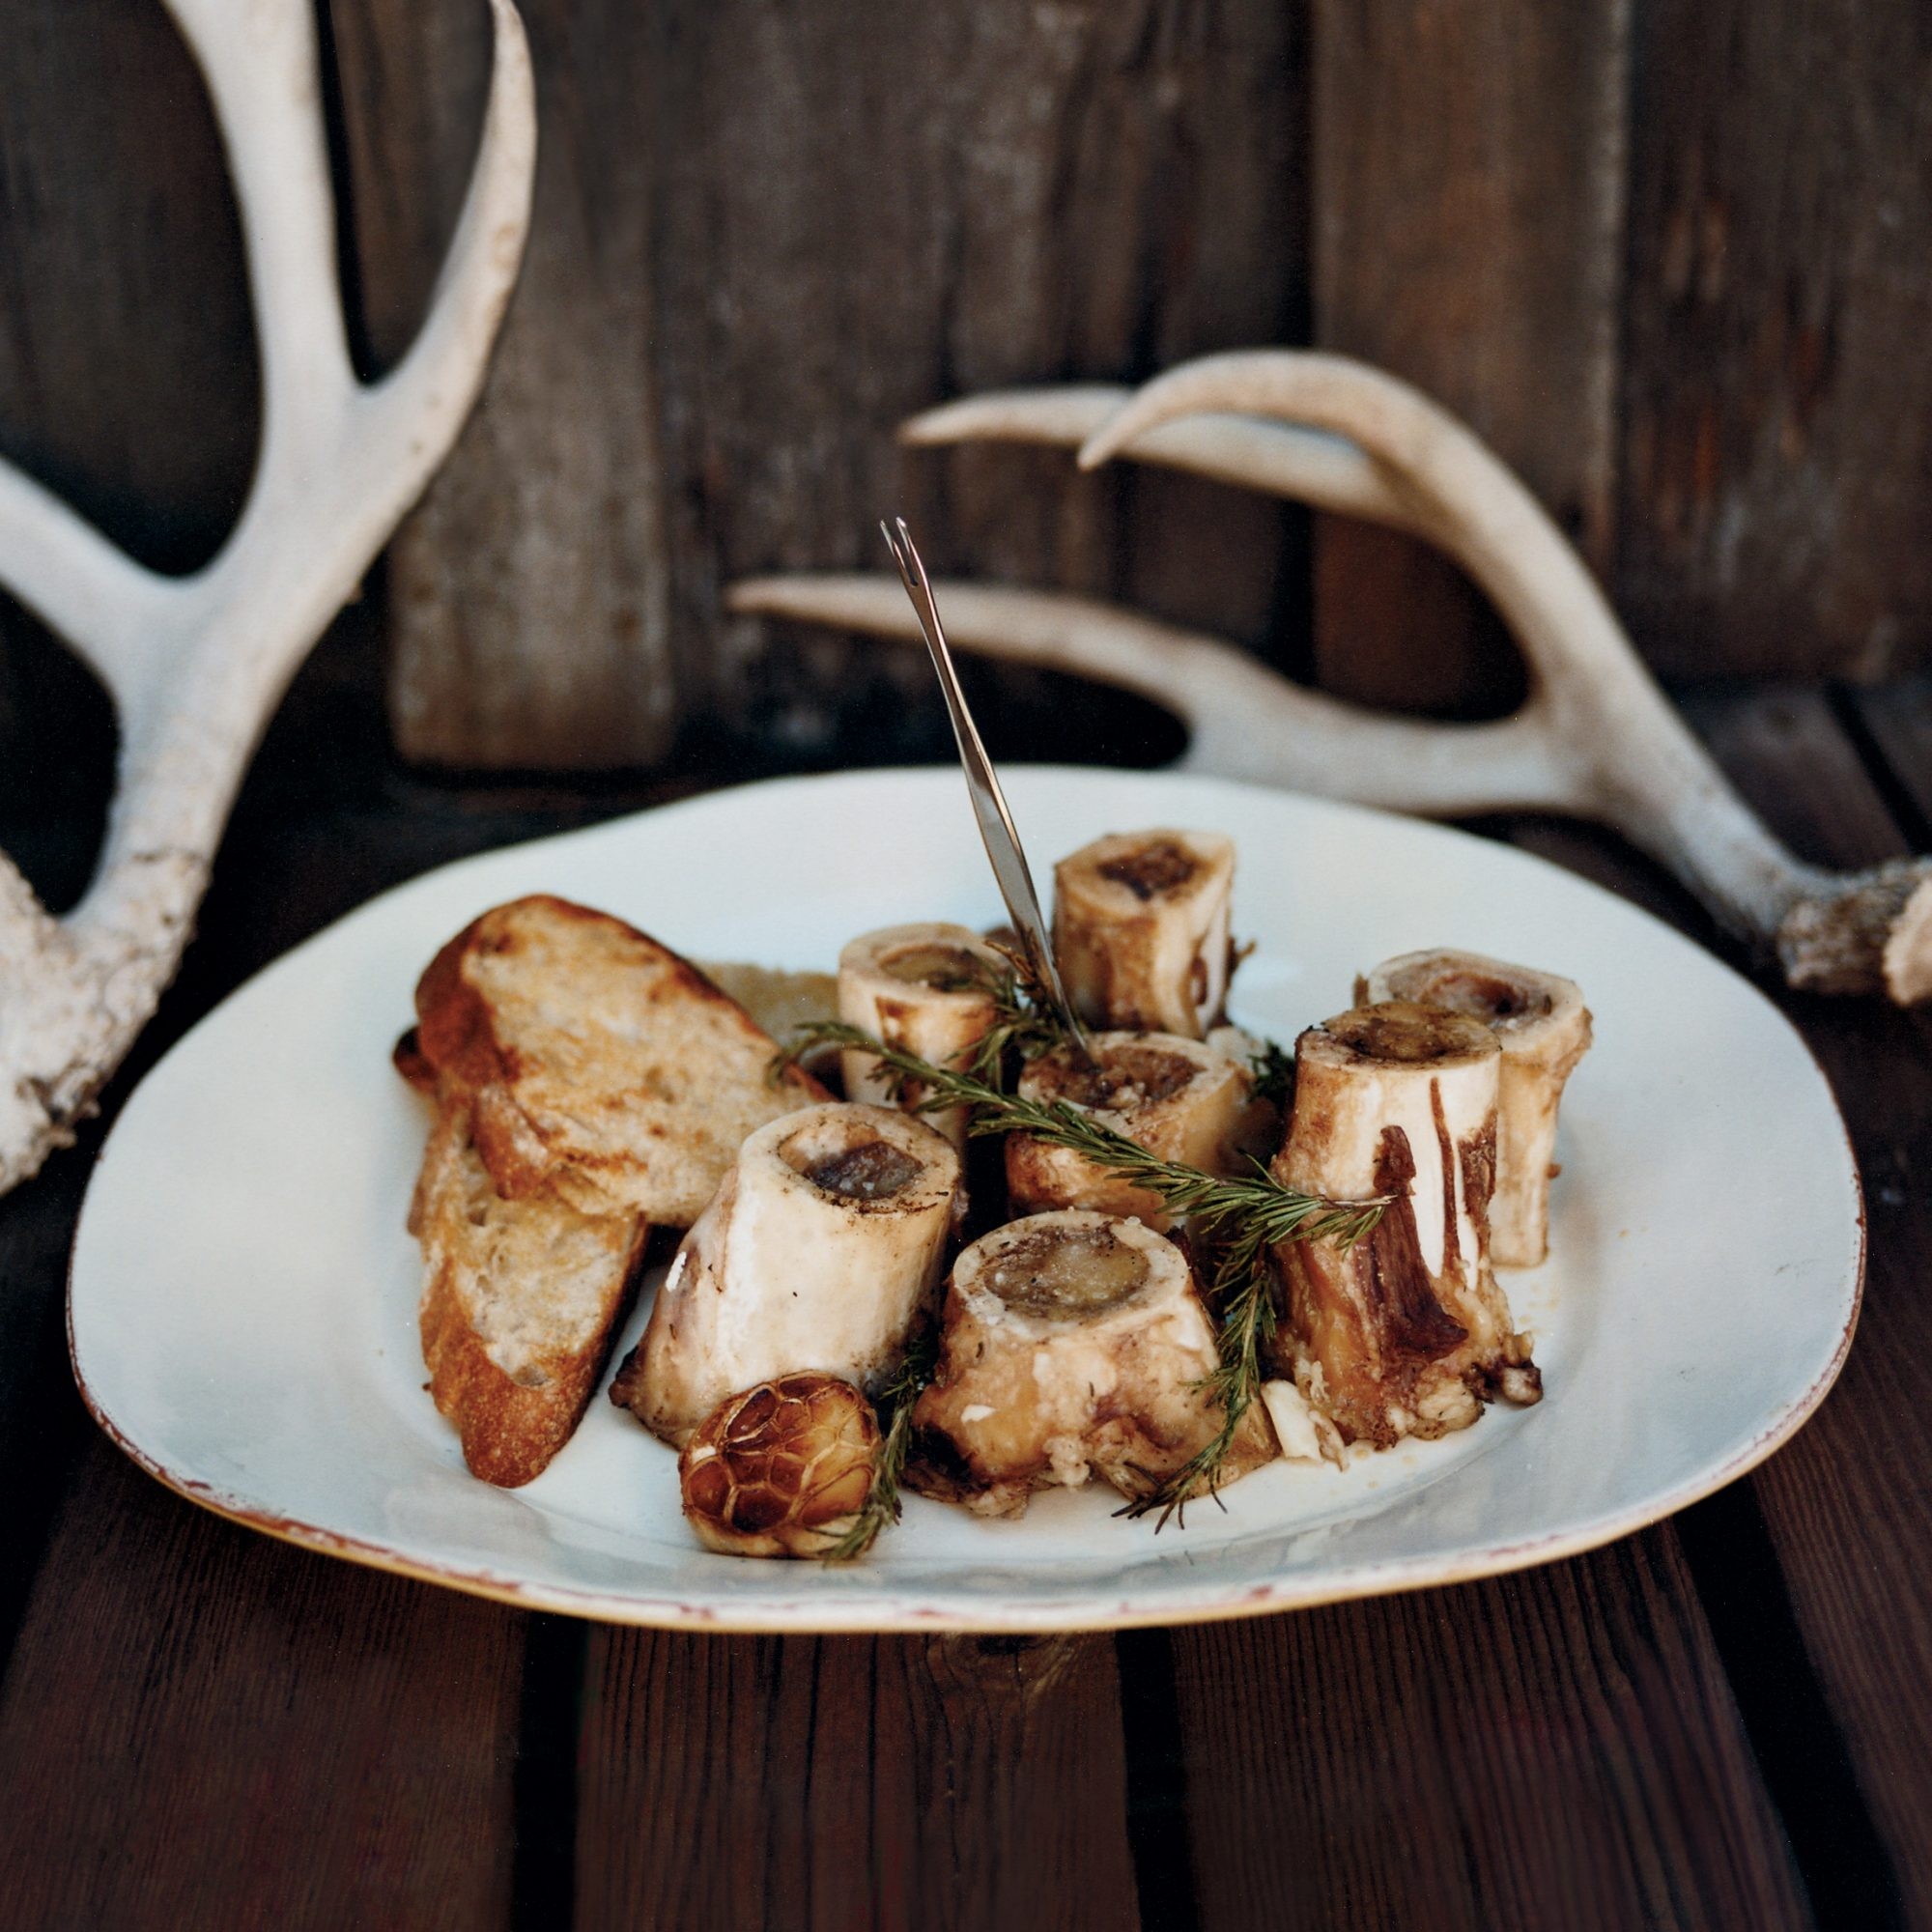 Grilled Marrow Bones with Rosemary-Lemon Bruschetta